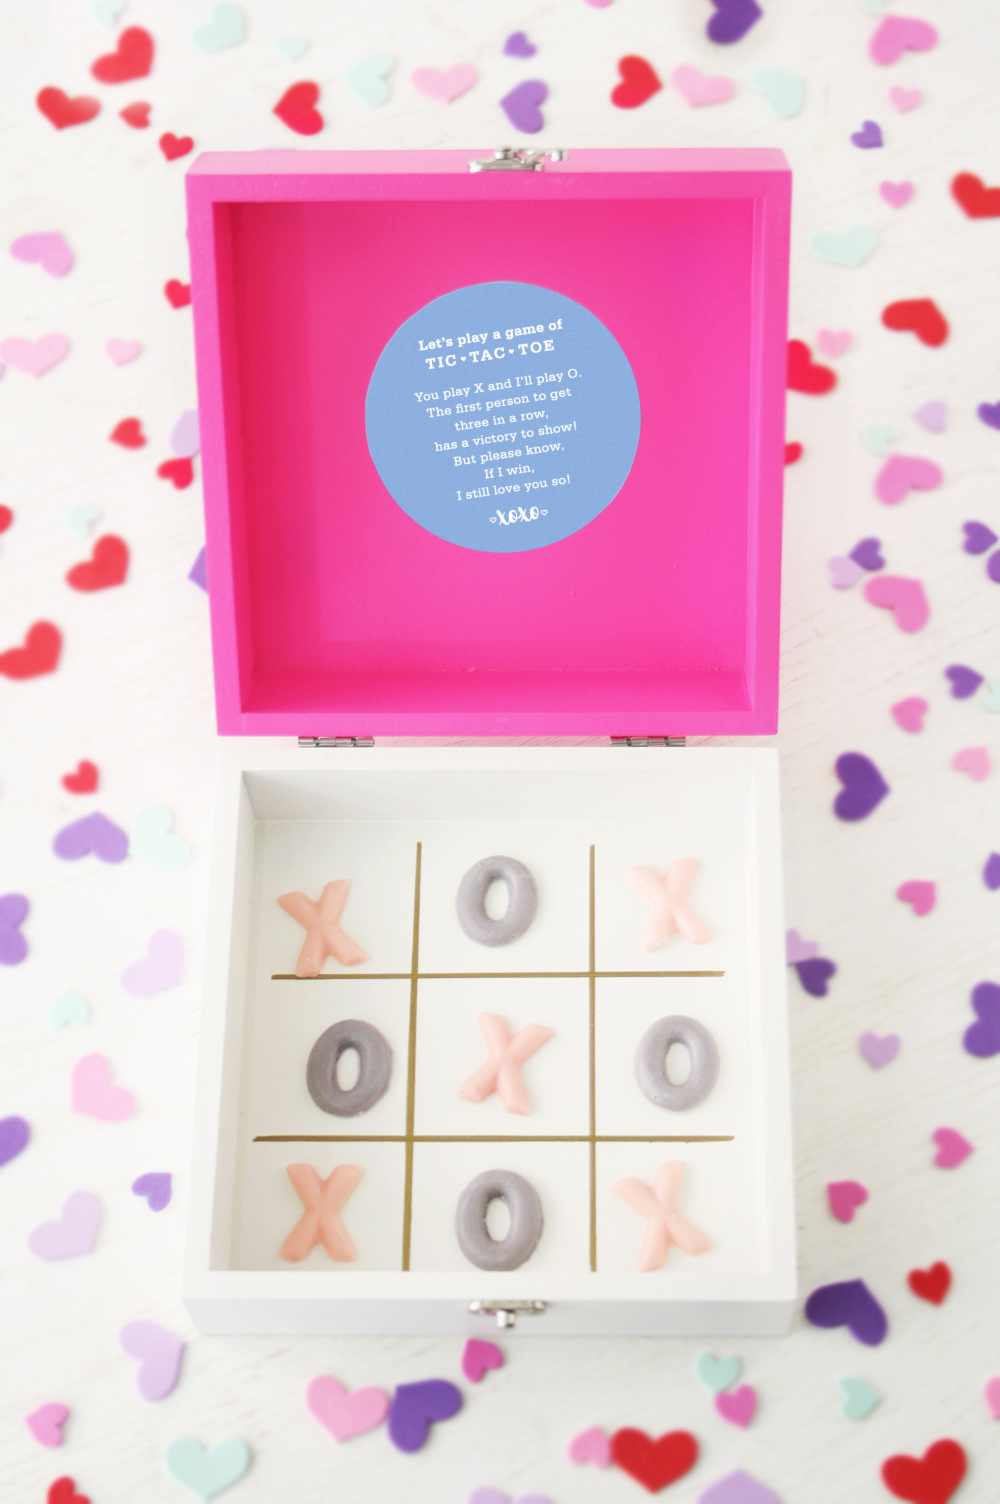 photo regarding Tic Tac Toe Valentine Printable titled Valentines Working day: Do-it-yourself Chocolate Tic-Tac-Toe Present Box +